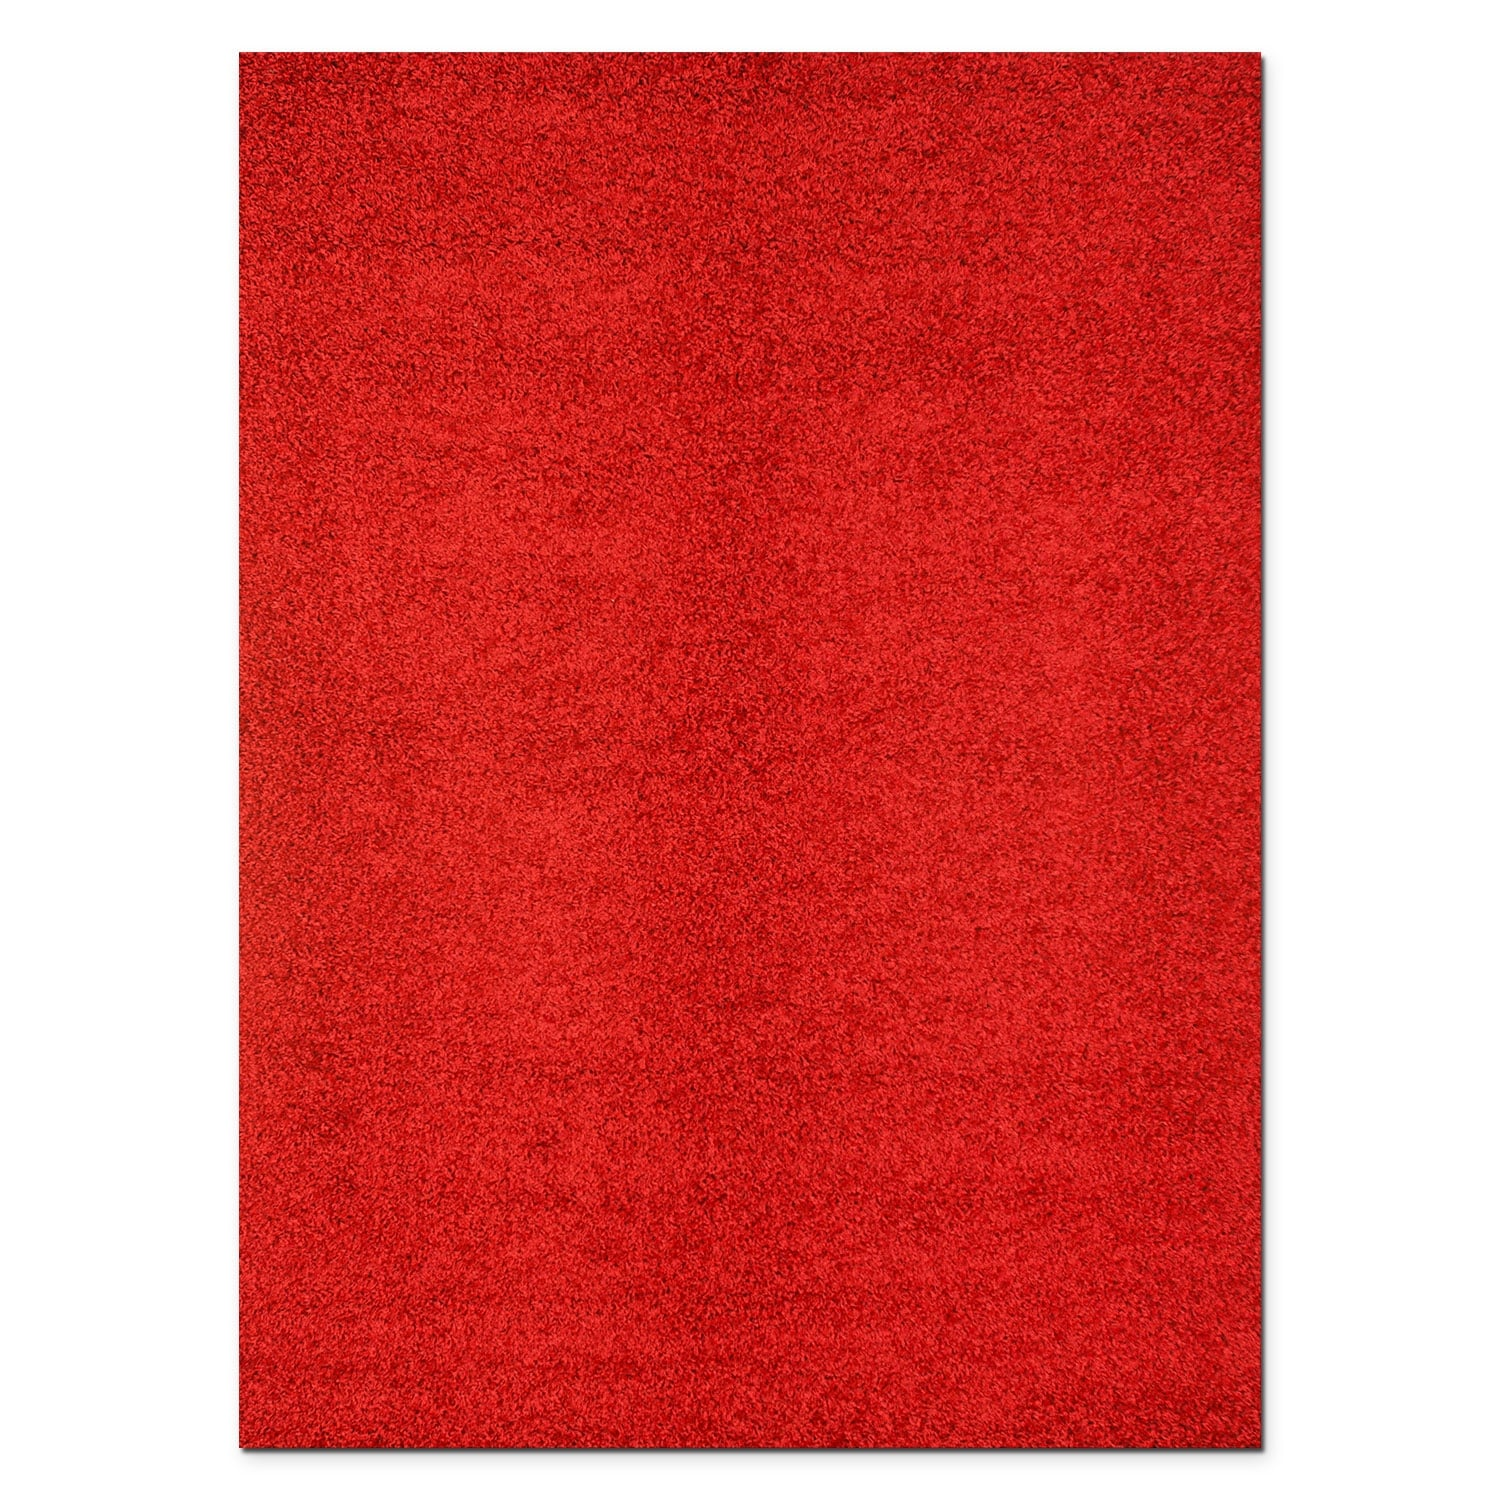 Rugs - Domino Red Shag Area Rug (8' x 10')